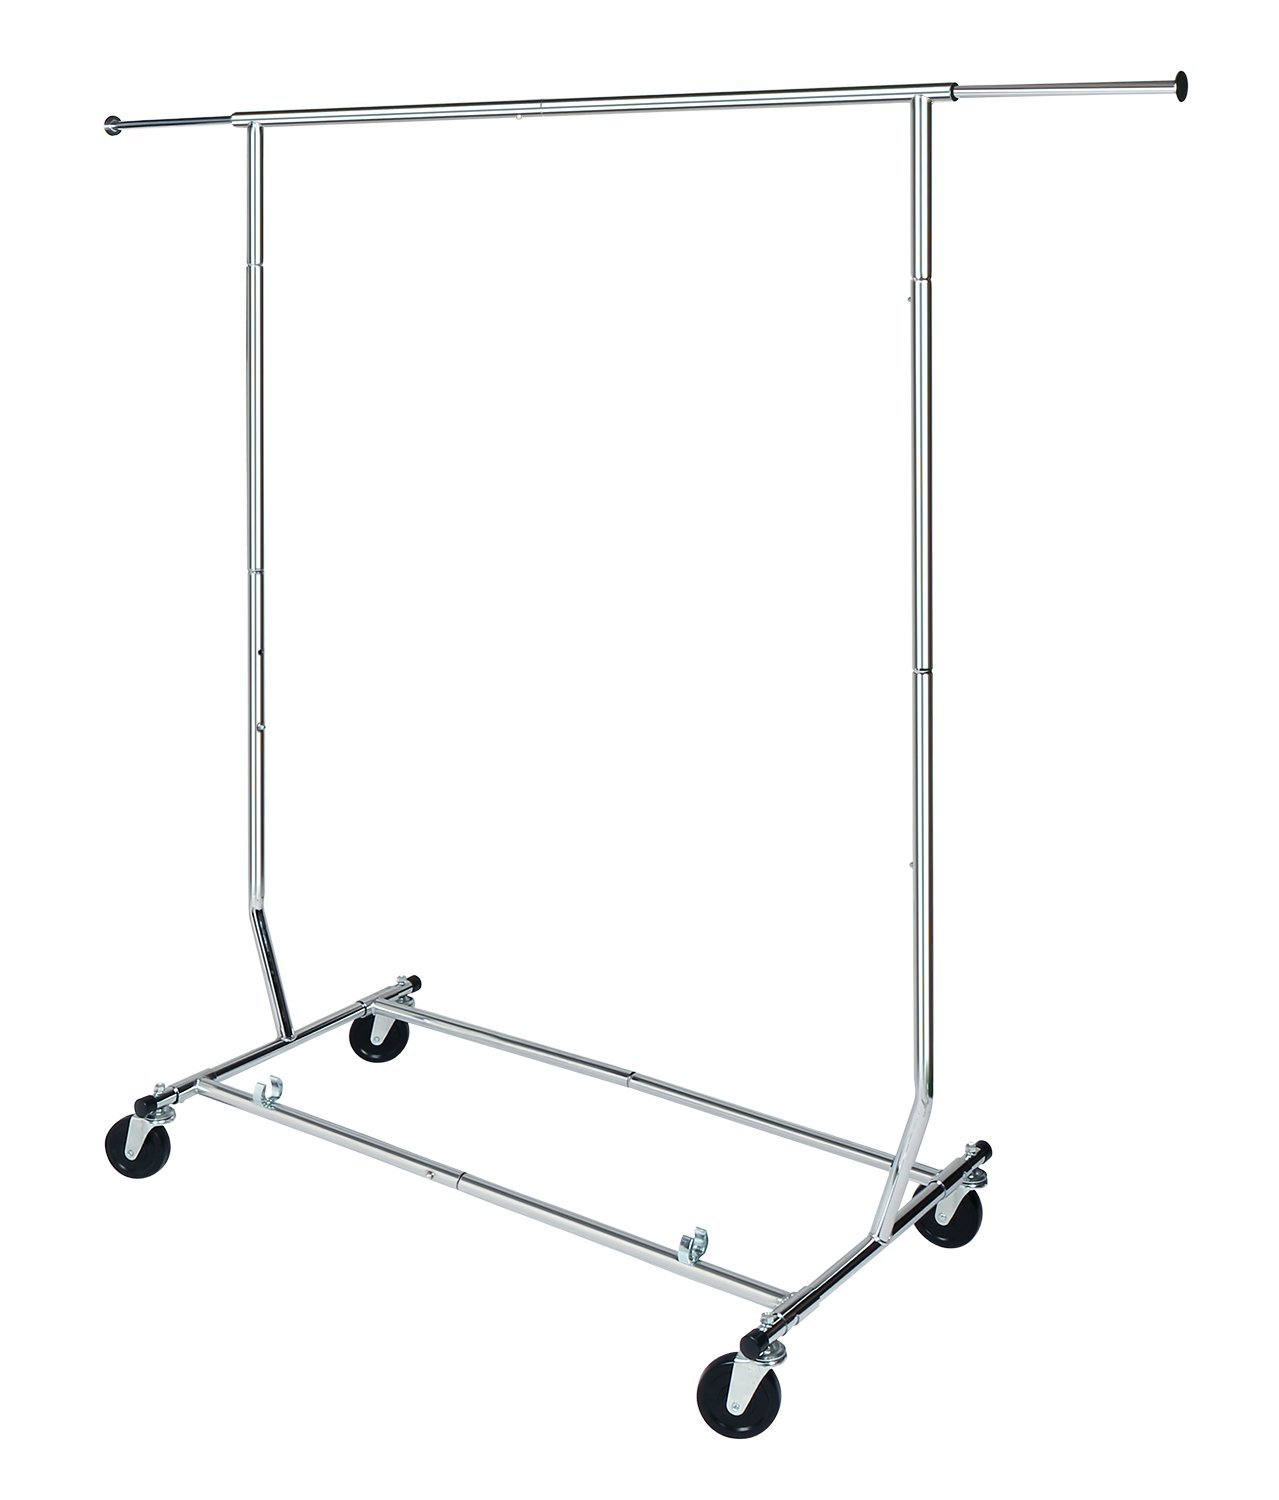 4. Need A Rack Collapsible Clothing Rack